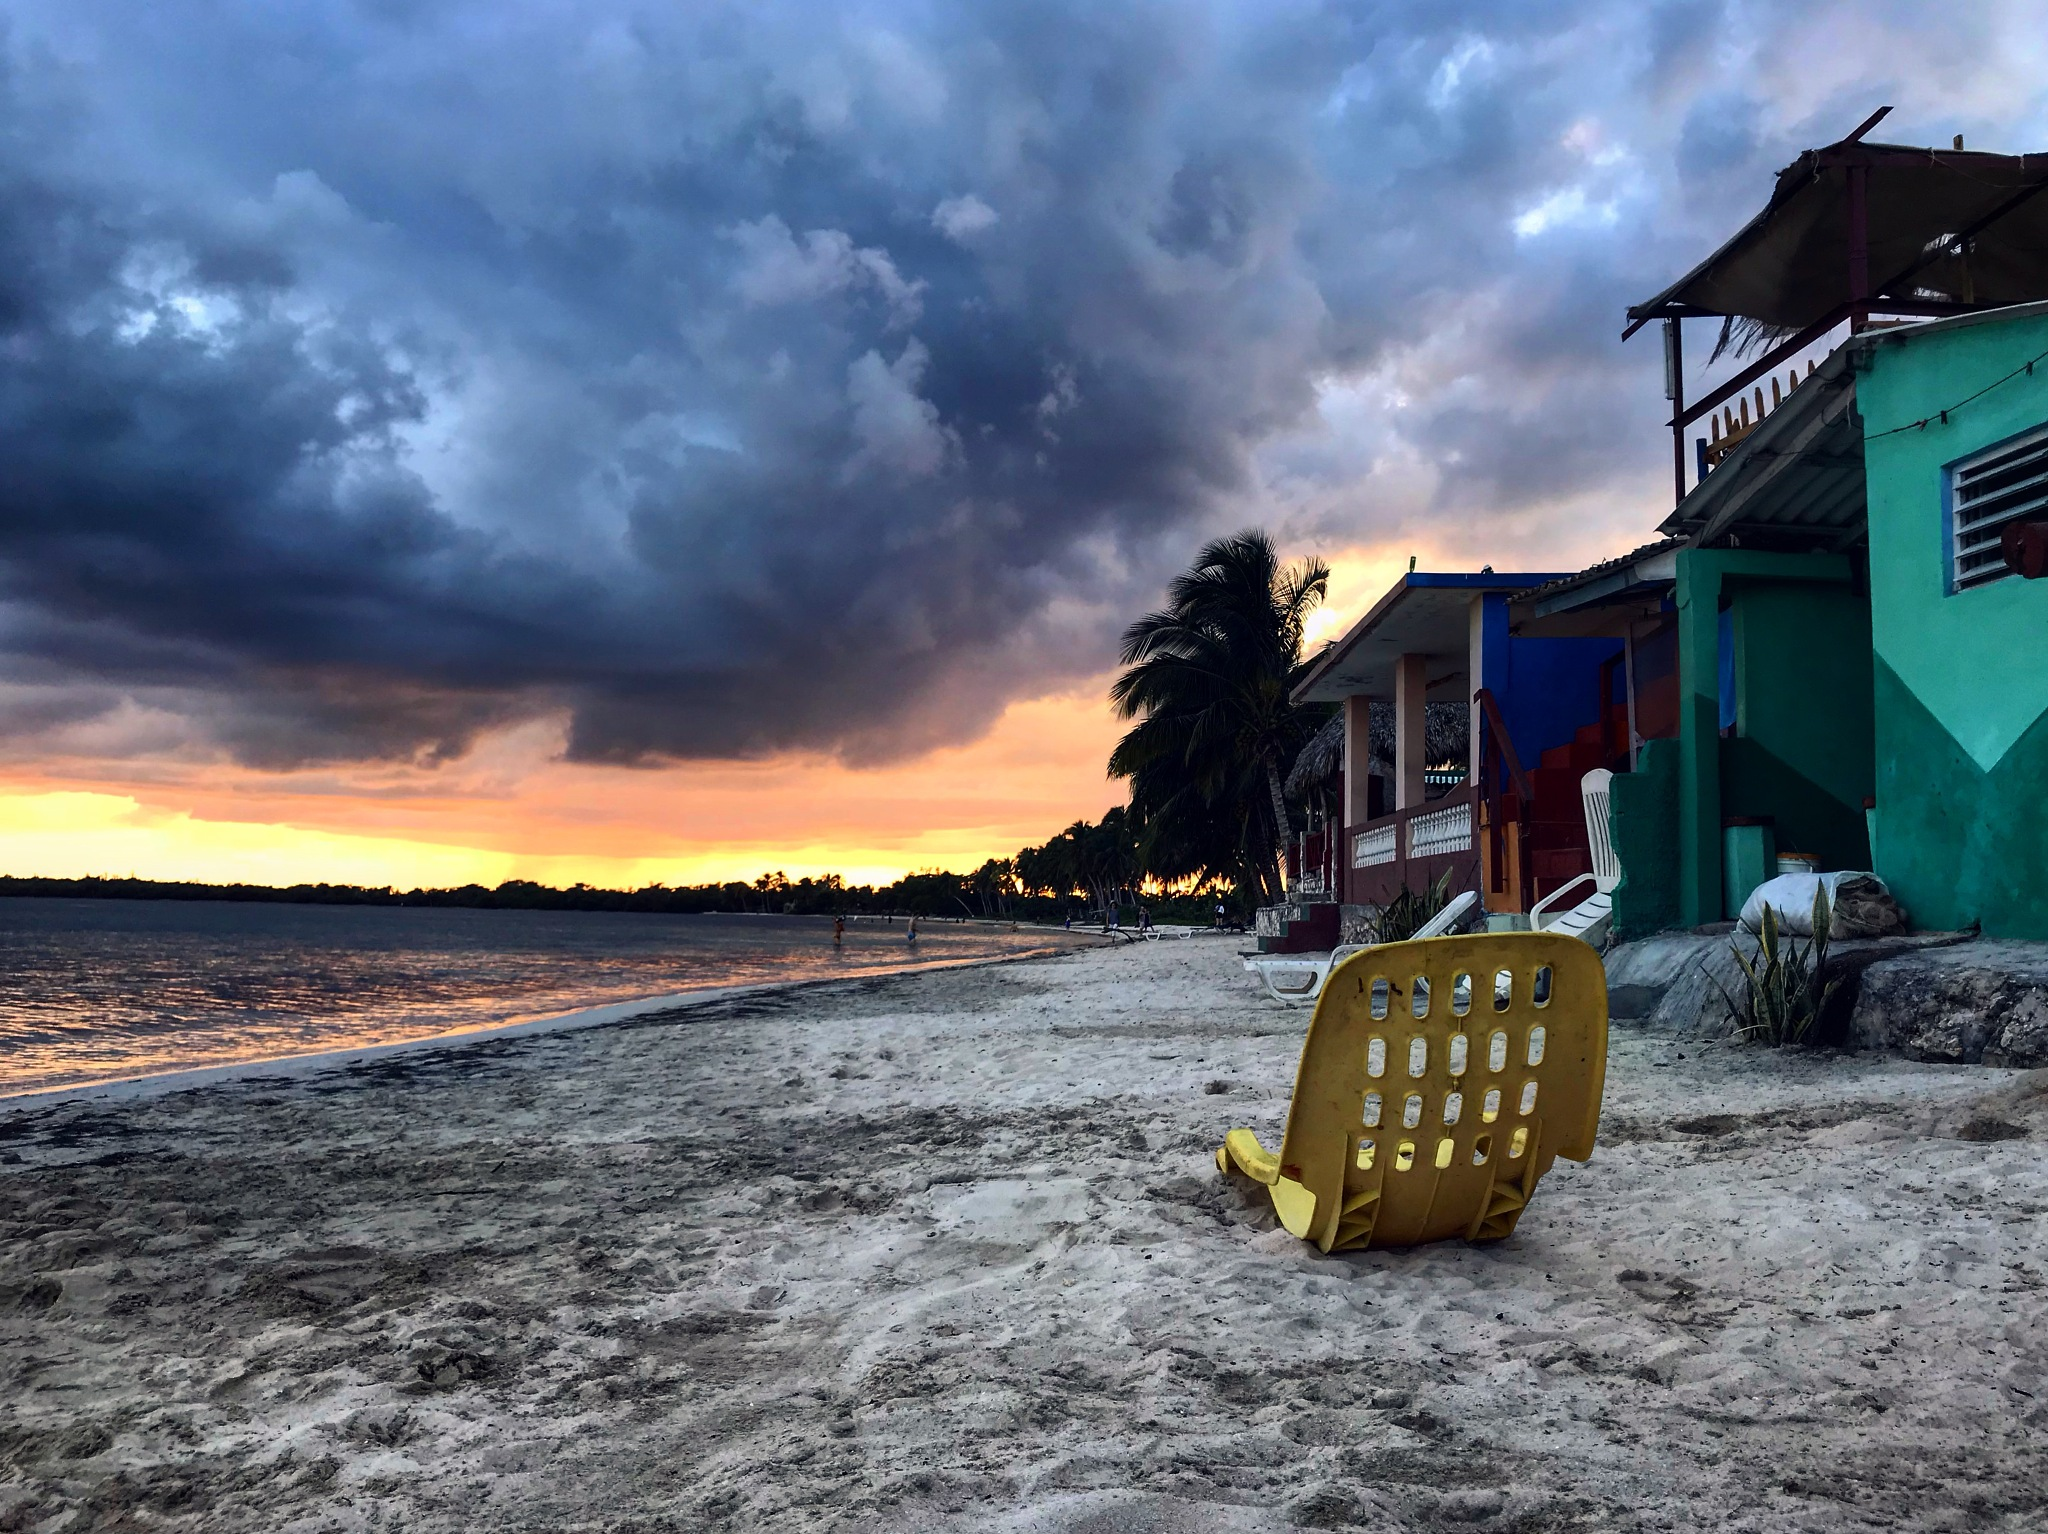 Sunset at bay of pigs by Majdrup